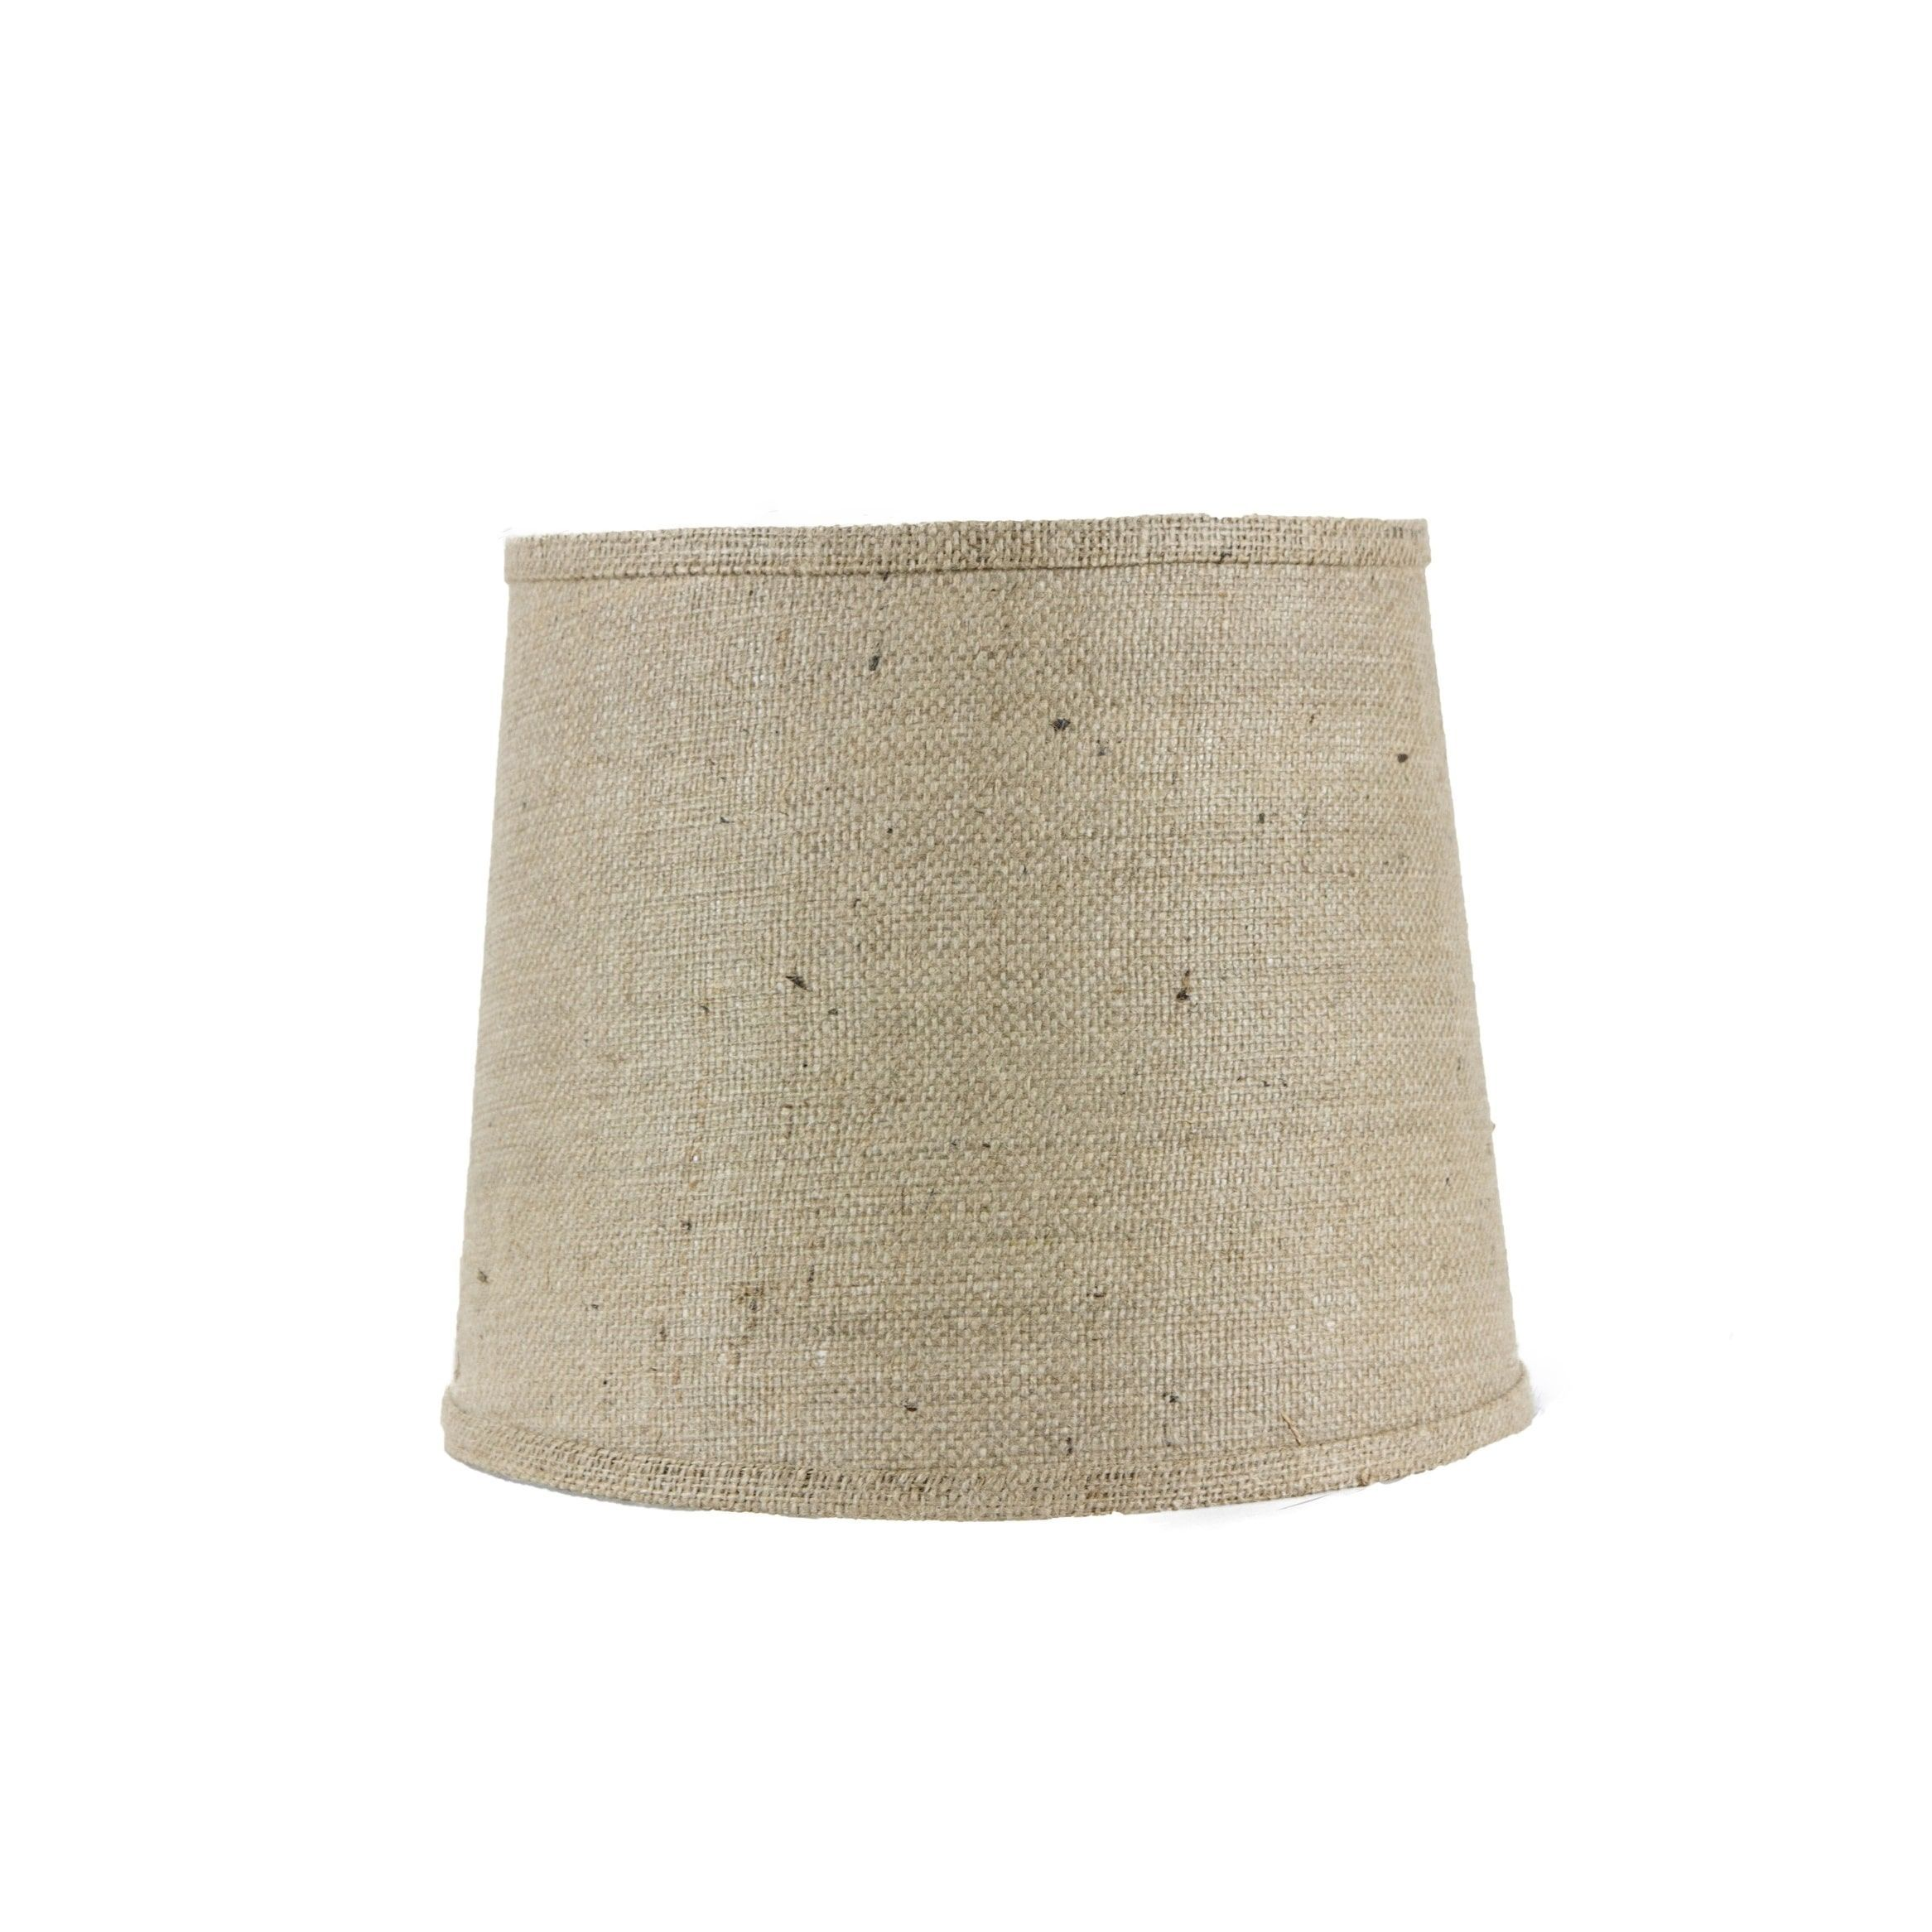 Somette natural burlap 12 inch drum lamp shade with washer brown somette natural burlap 12 inch drum lamp shade with washer brown fabric aloadofball Choice Image